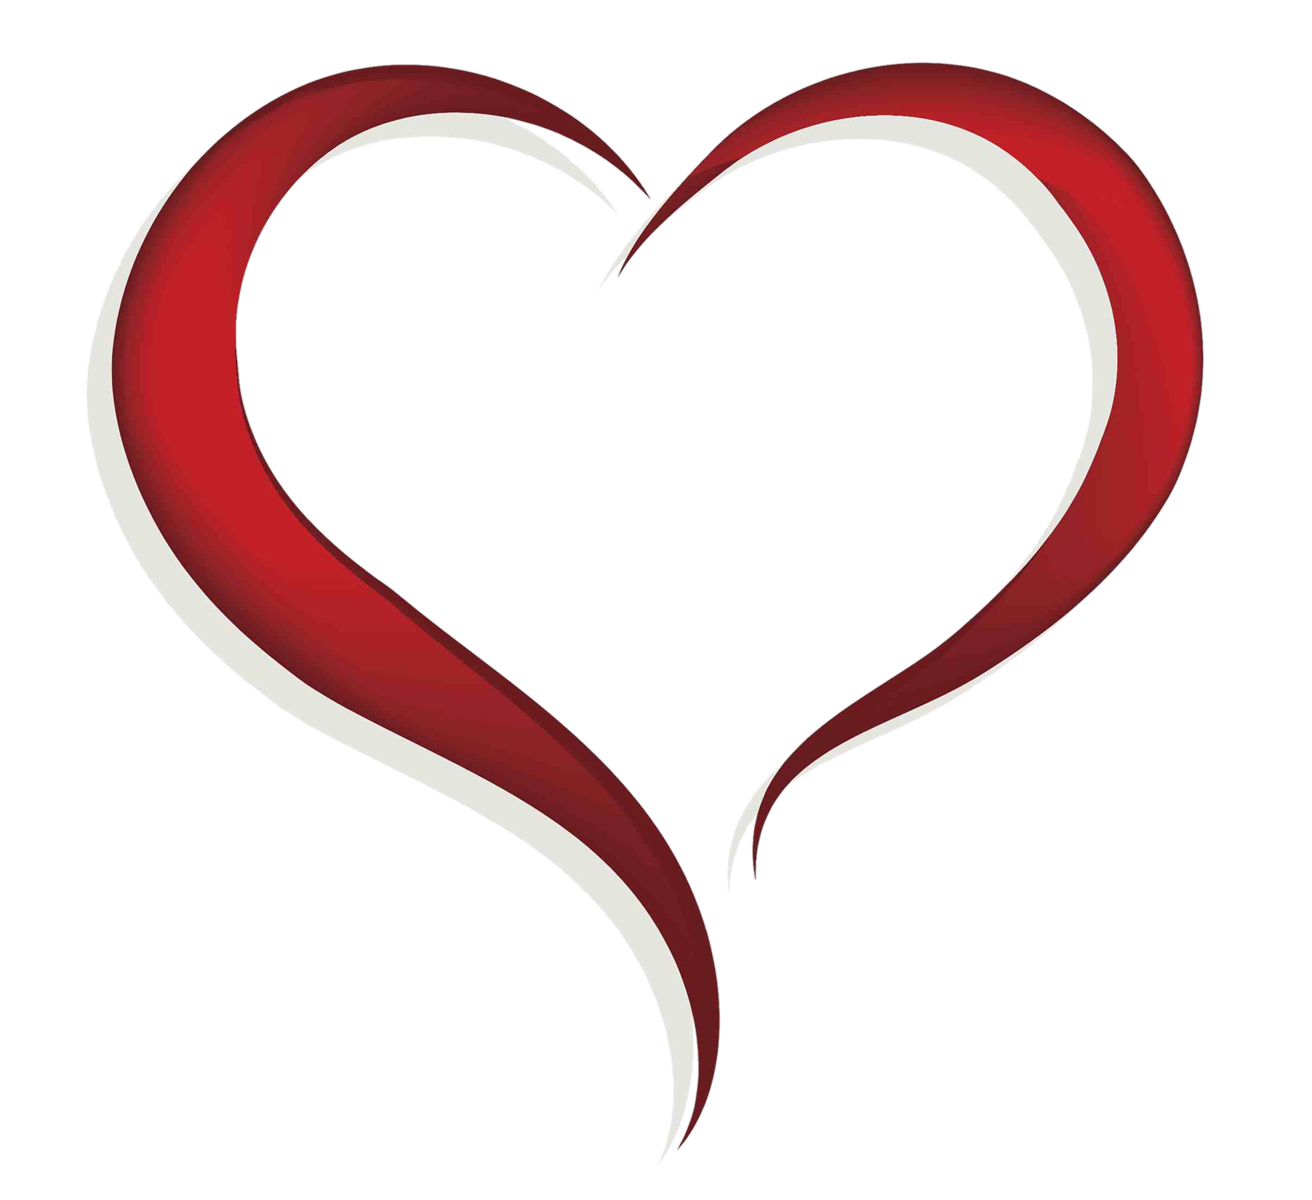 Heart PNG iamges Clipart free download with transparent Background - Love Clipart PNG